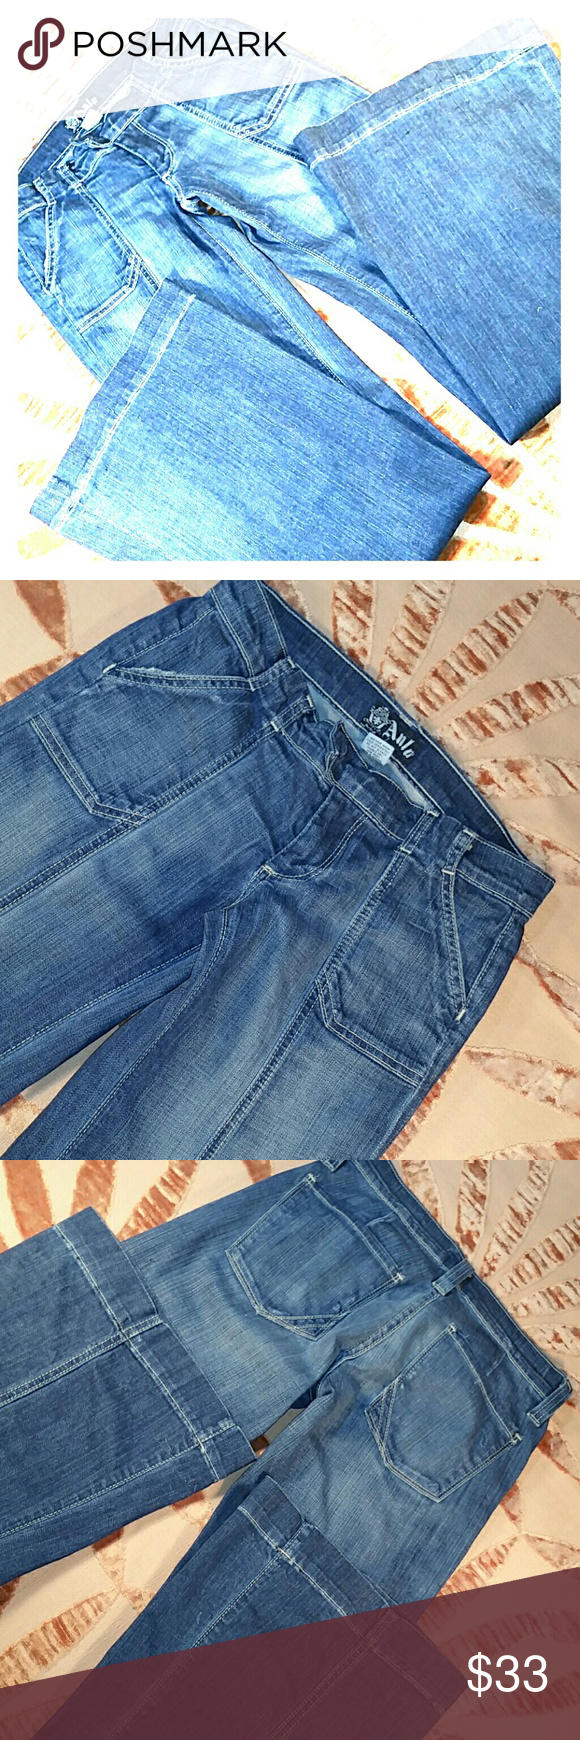 Superflares Low rise stretch bellbottom superflare jeans. 98%cotton 2%polyurethane. Thin super stretchy. Cool 70s details. Bells measure 22INCHES!!! Rise measures 6.5inch. EXCELLENT CONDITION Anlo Jeans Flare & Wide Leg